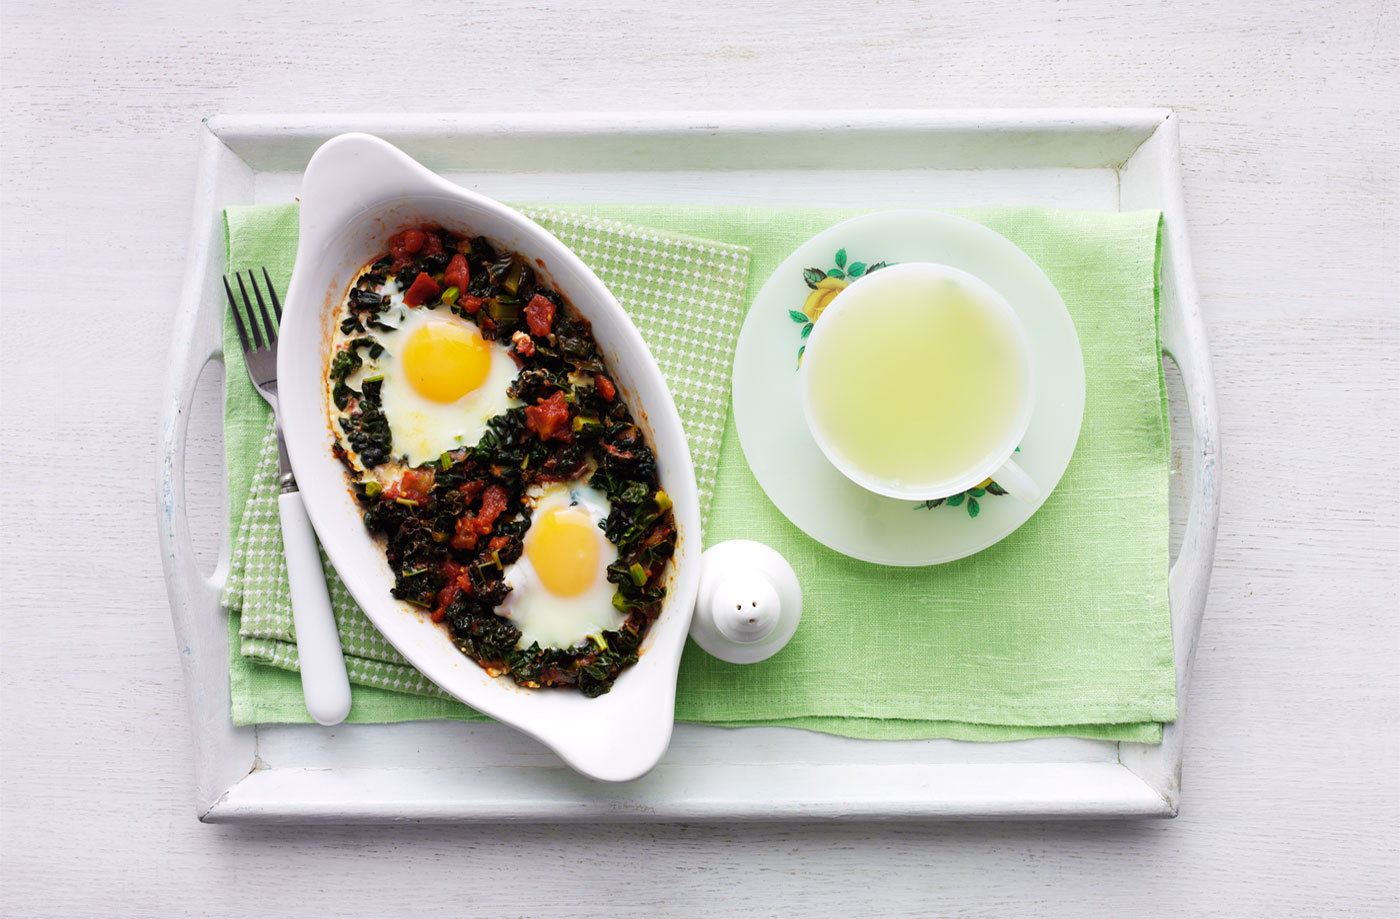 Baked eggs with tomatoes and black kale recipe